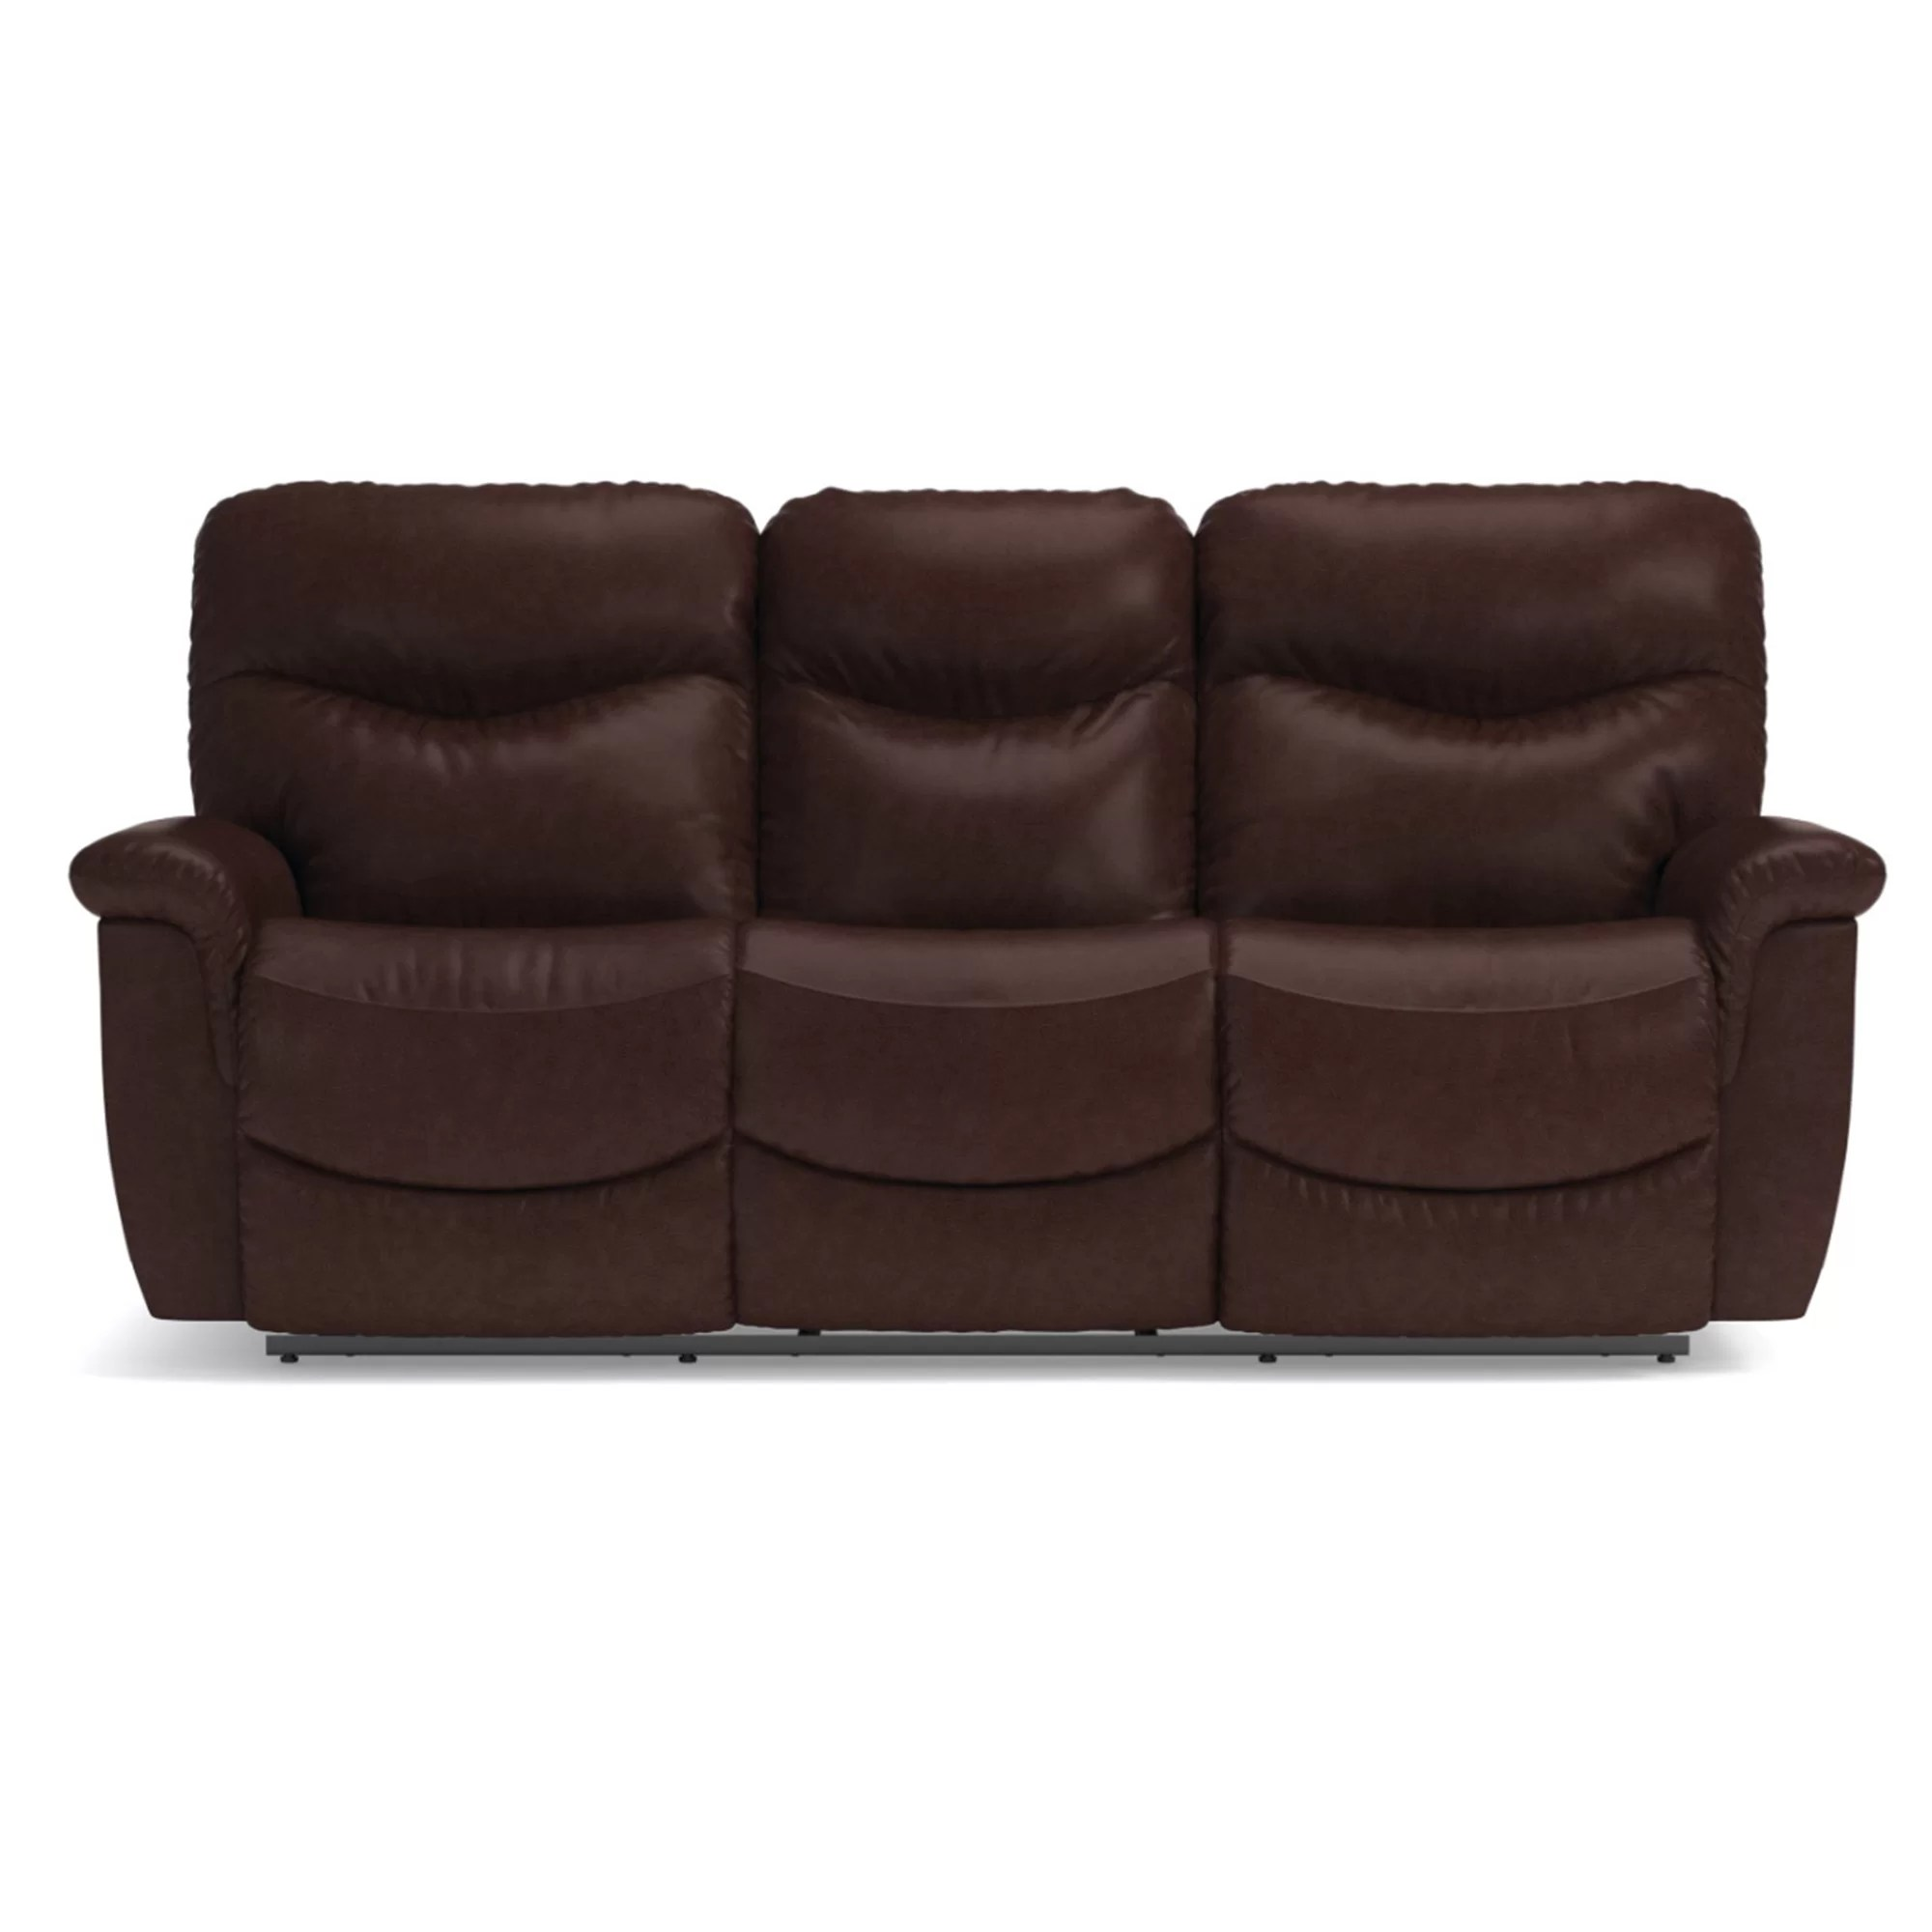 Leather Sofa La Z Boy James La Z Time Full Reclining Sofa